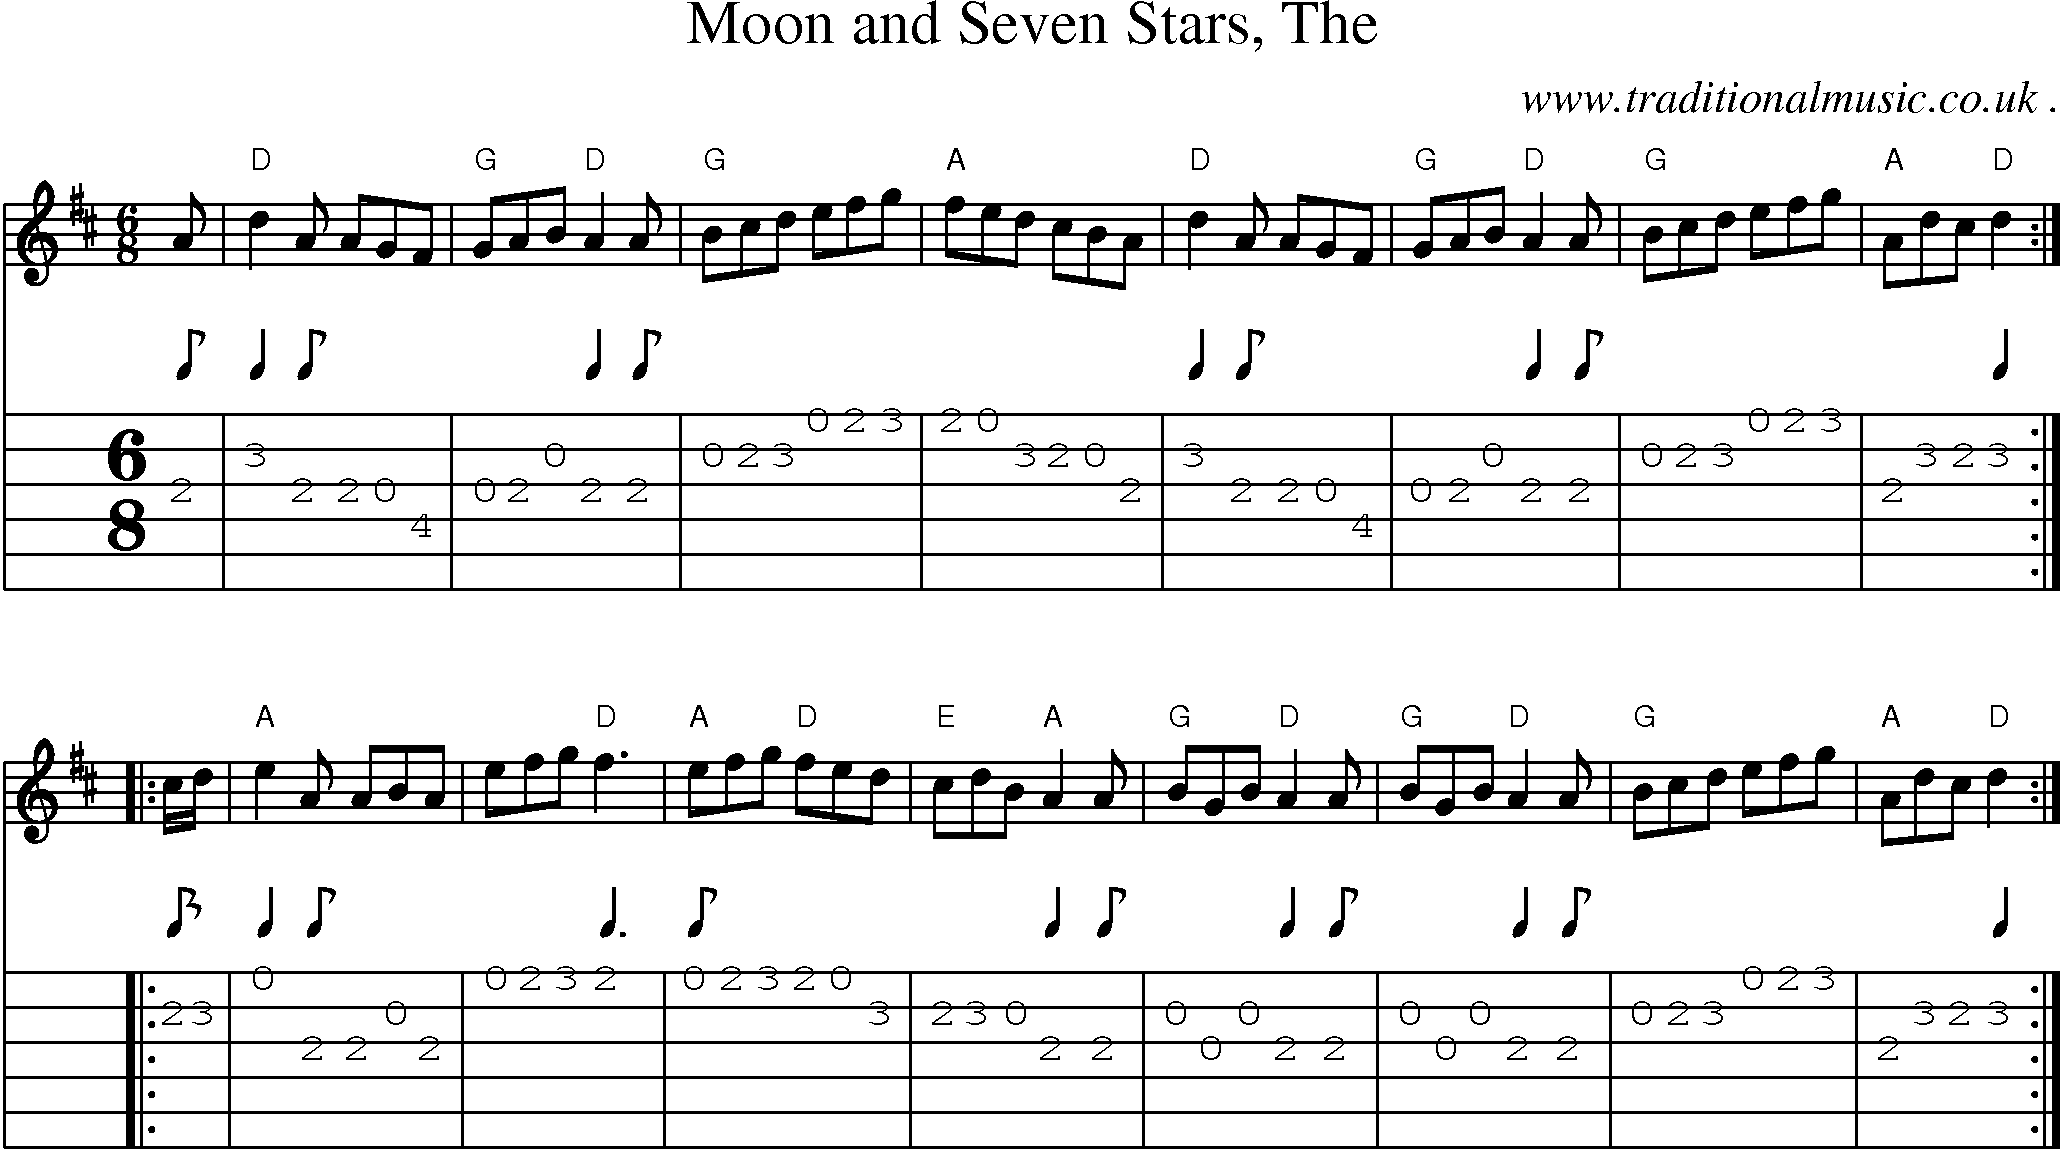 Scottish tune sheetmusic midi mp3 guitar chords tabs moon sheet music score chords and guitar tabs for moon and seven stars the hexwebz Gallery